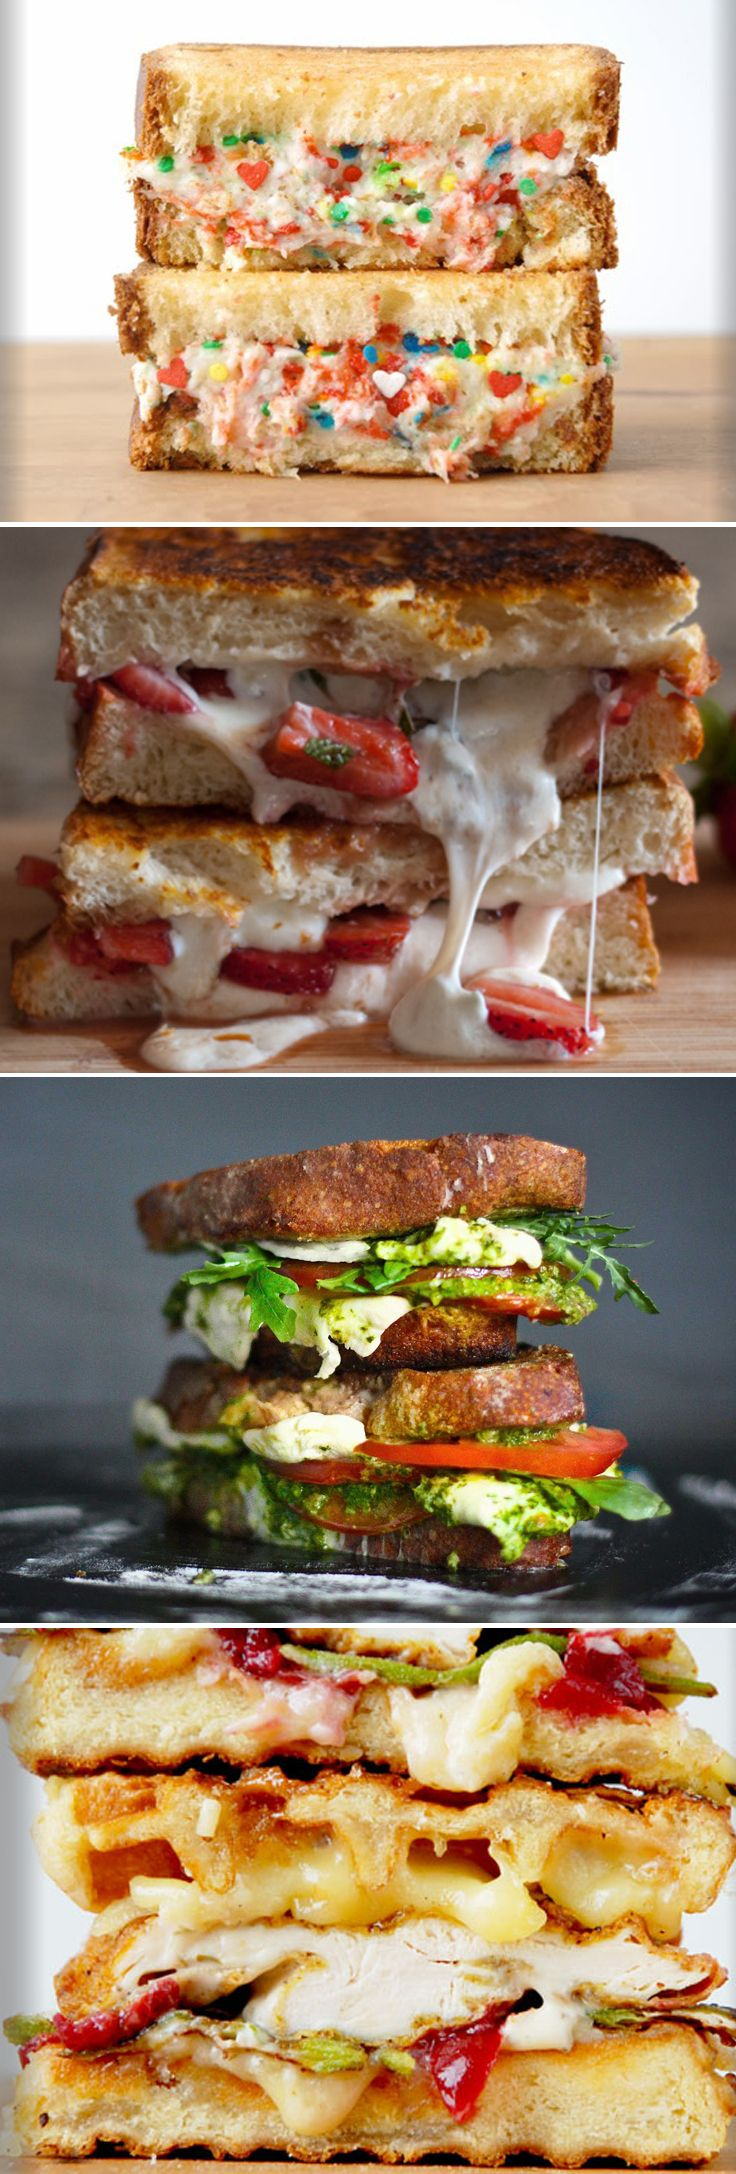 手机壳定制coach on sale Creative grilled cheese sandwich recipes including Funfetti amp Riccotta Cheese Burrata Balsamic Strawberry Chicken amp Waffle and Caprese amp Fresh Mozzarella are but a few of the easy GrilledCheese recipes I hope you   ll enjoy as much as my family did http  www cheeserank com culture insane grilled cheeses recipes sandwiches  image